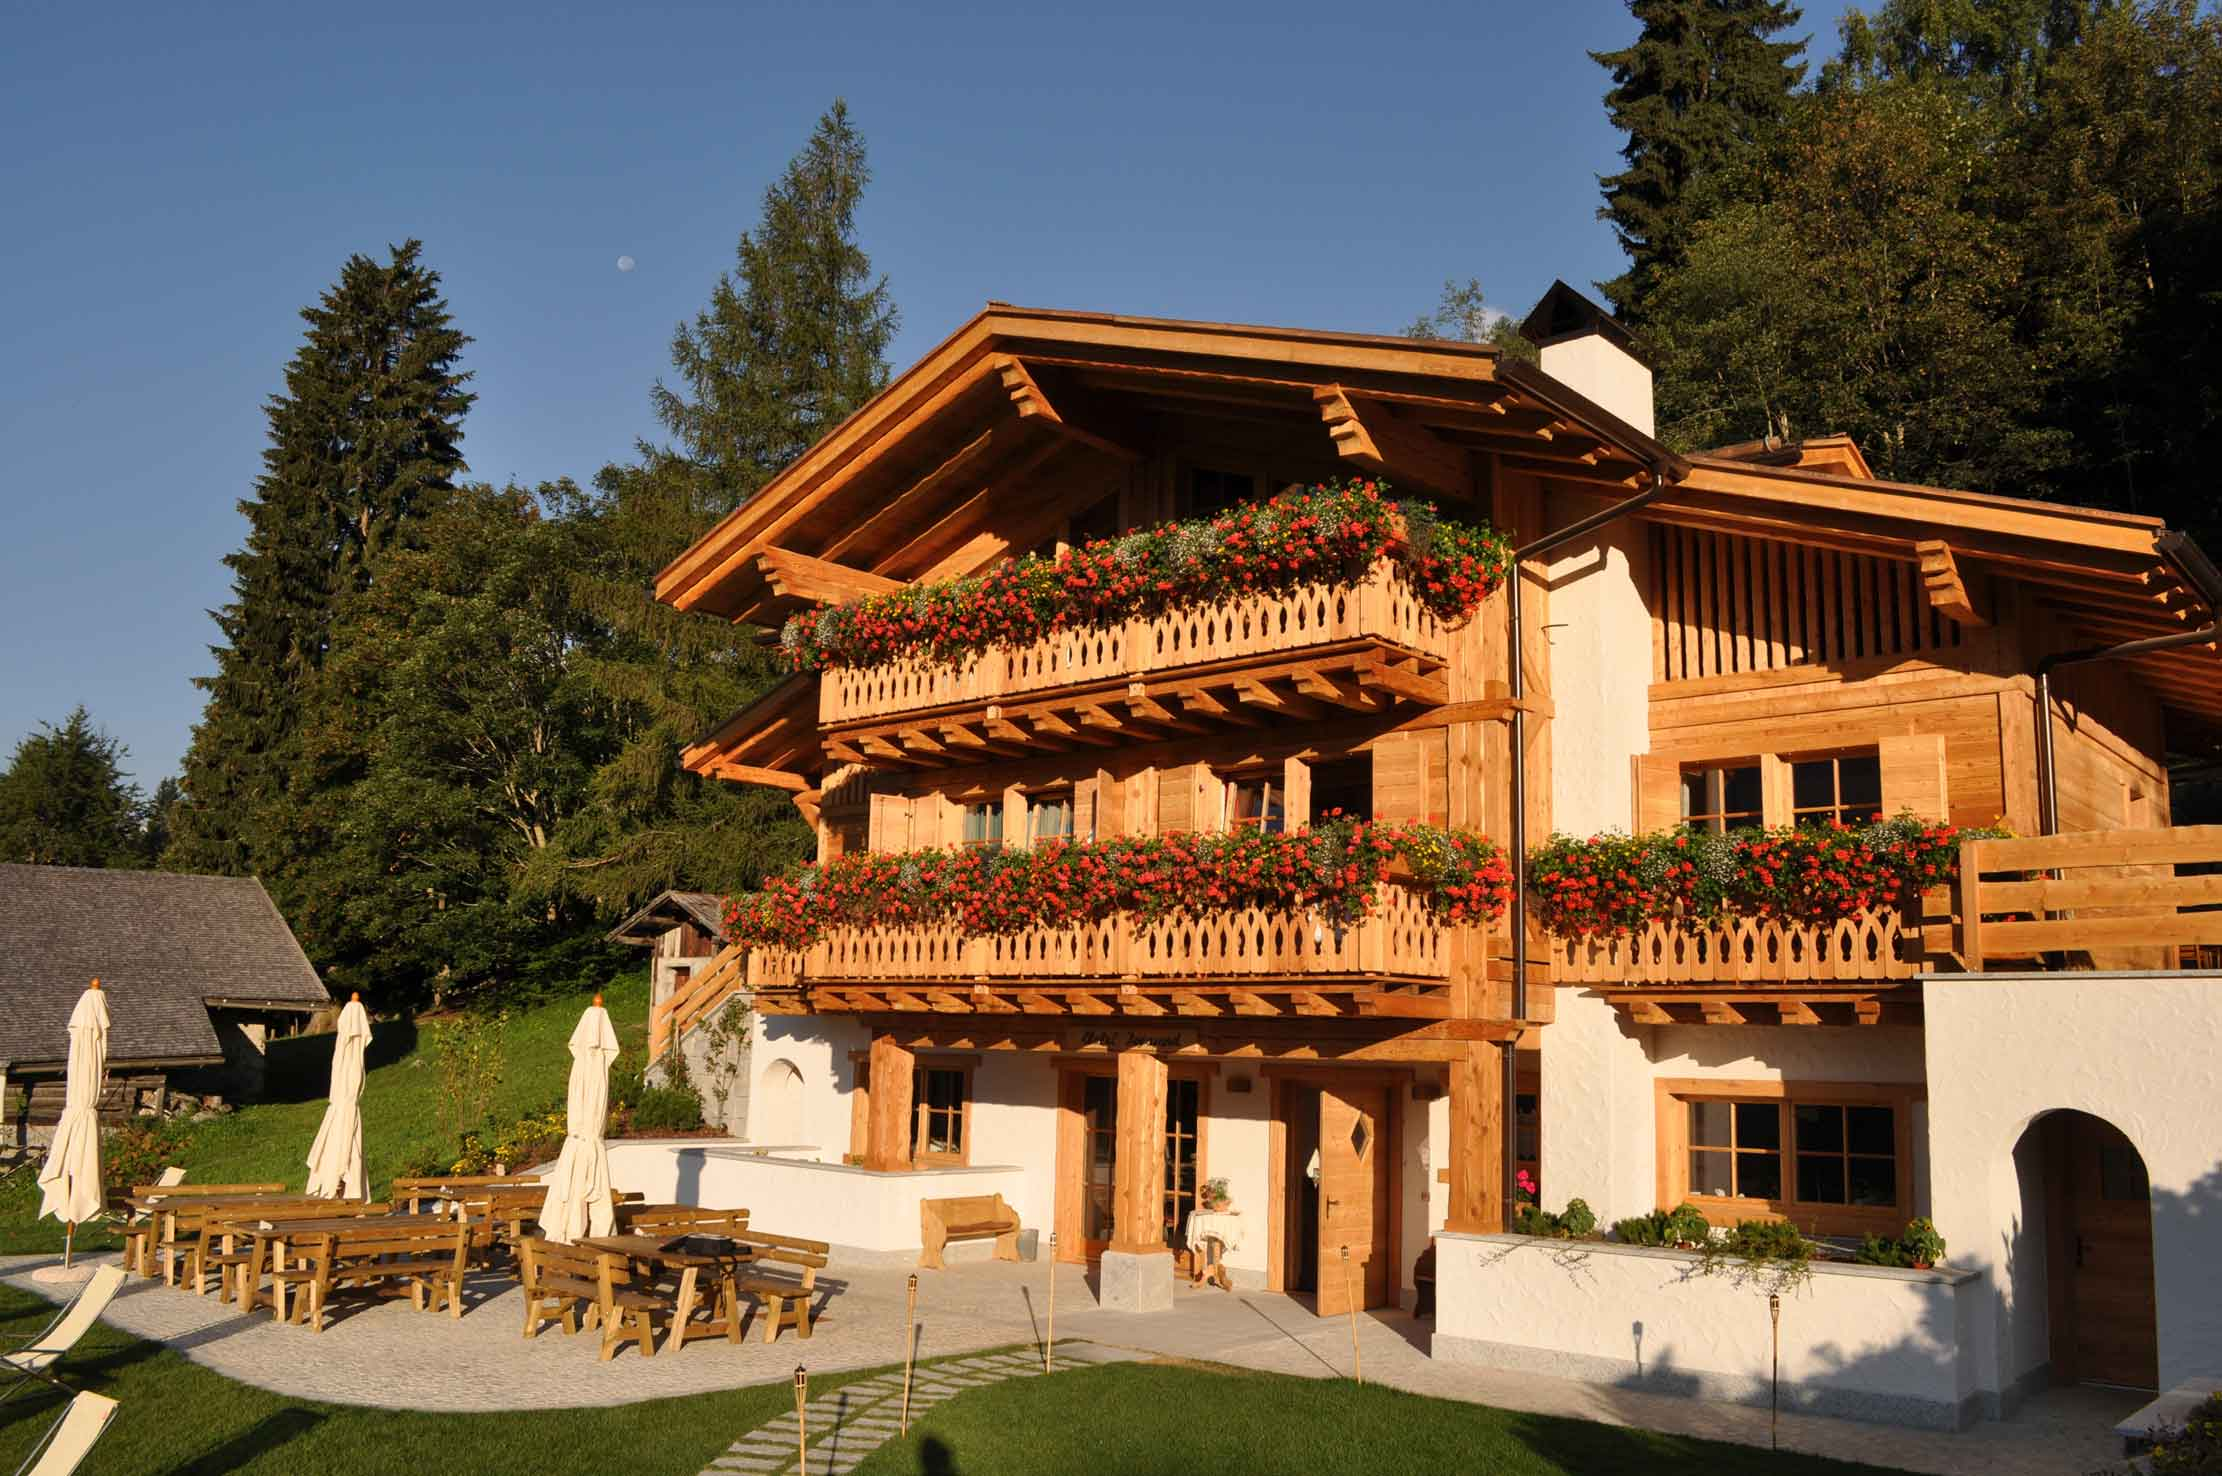 This earth-friendly aerie in Italy's Brenta Dolomites has been designed with sustainable building materials, numerous energy-saving systems, and a host of luxurious features for environmentally aware adventure seekers.